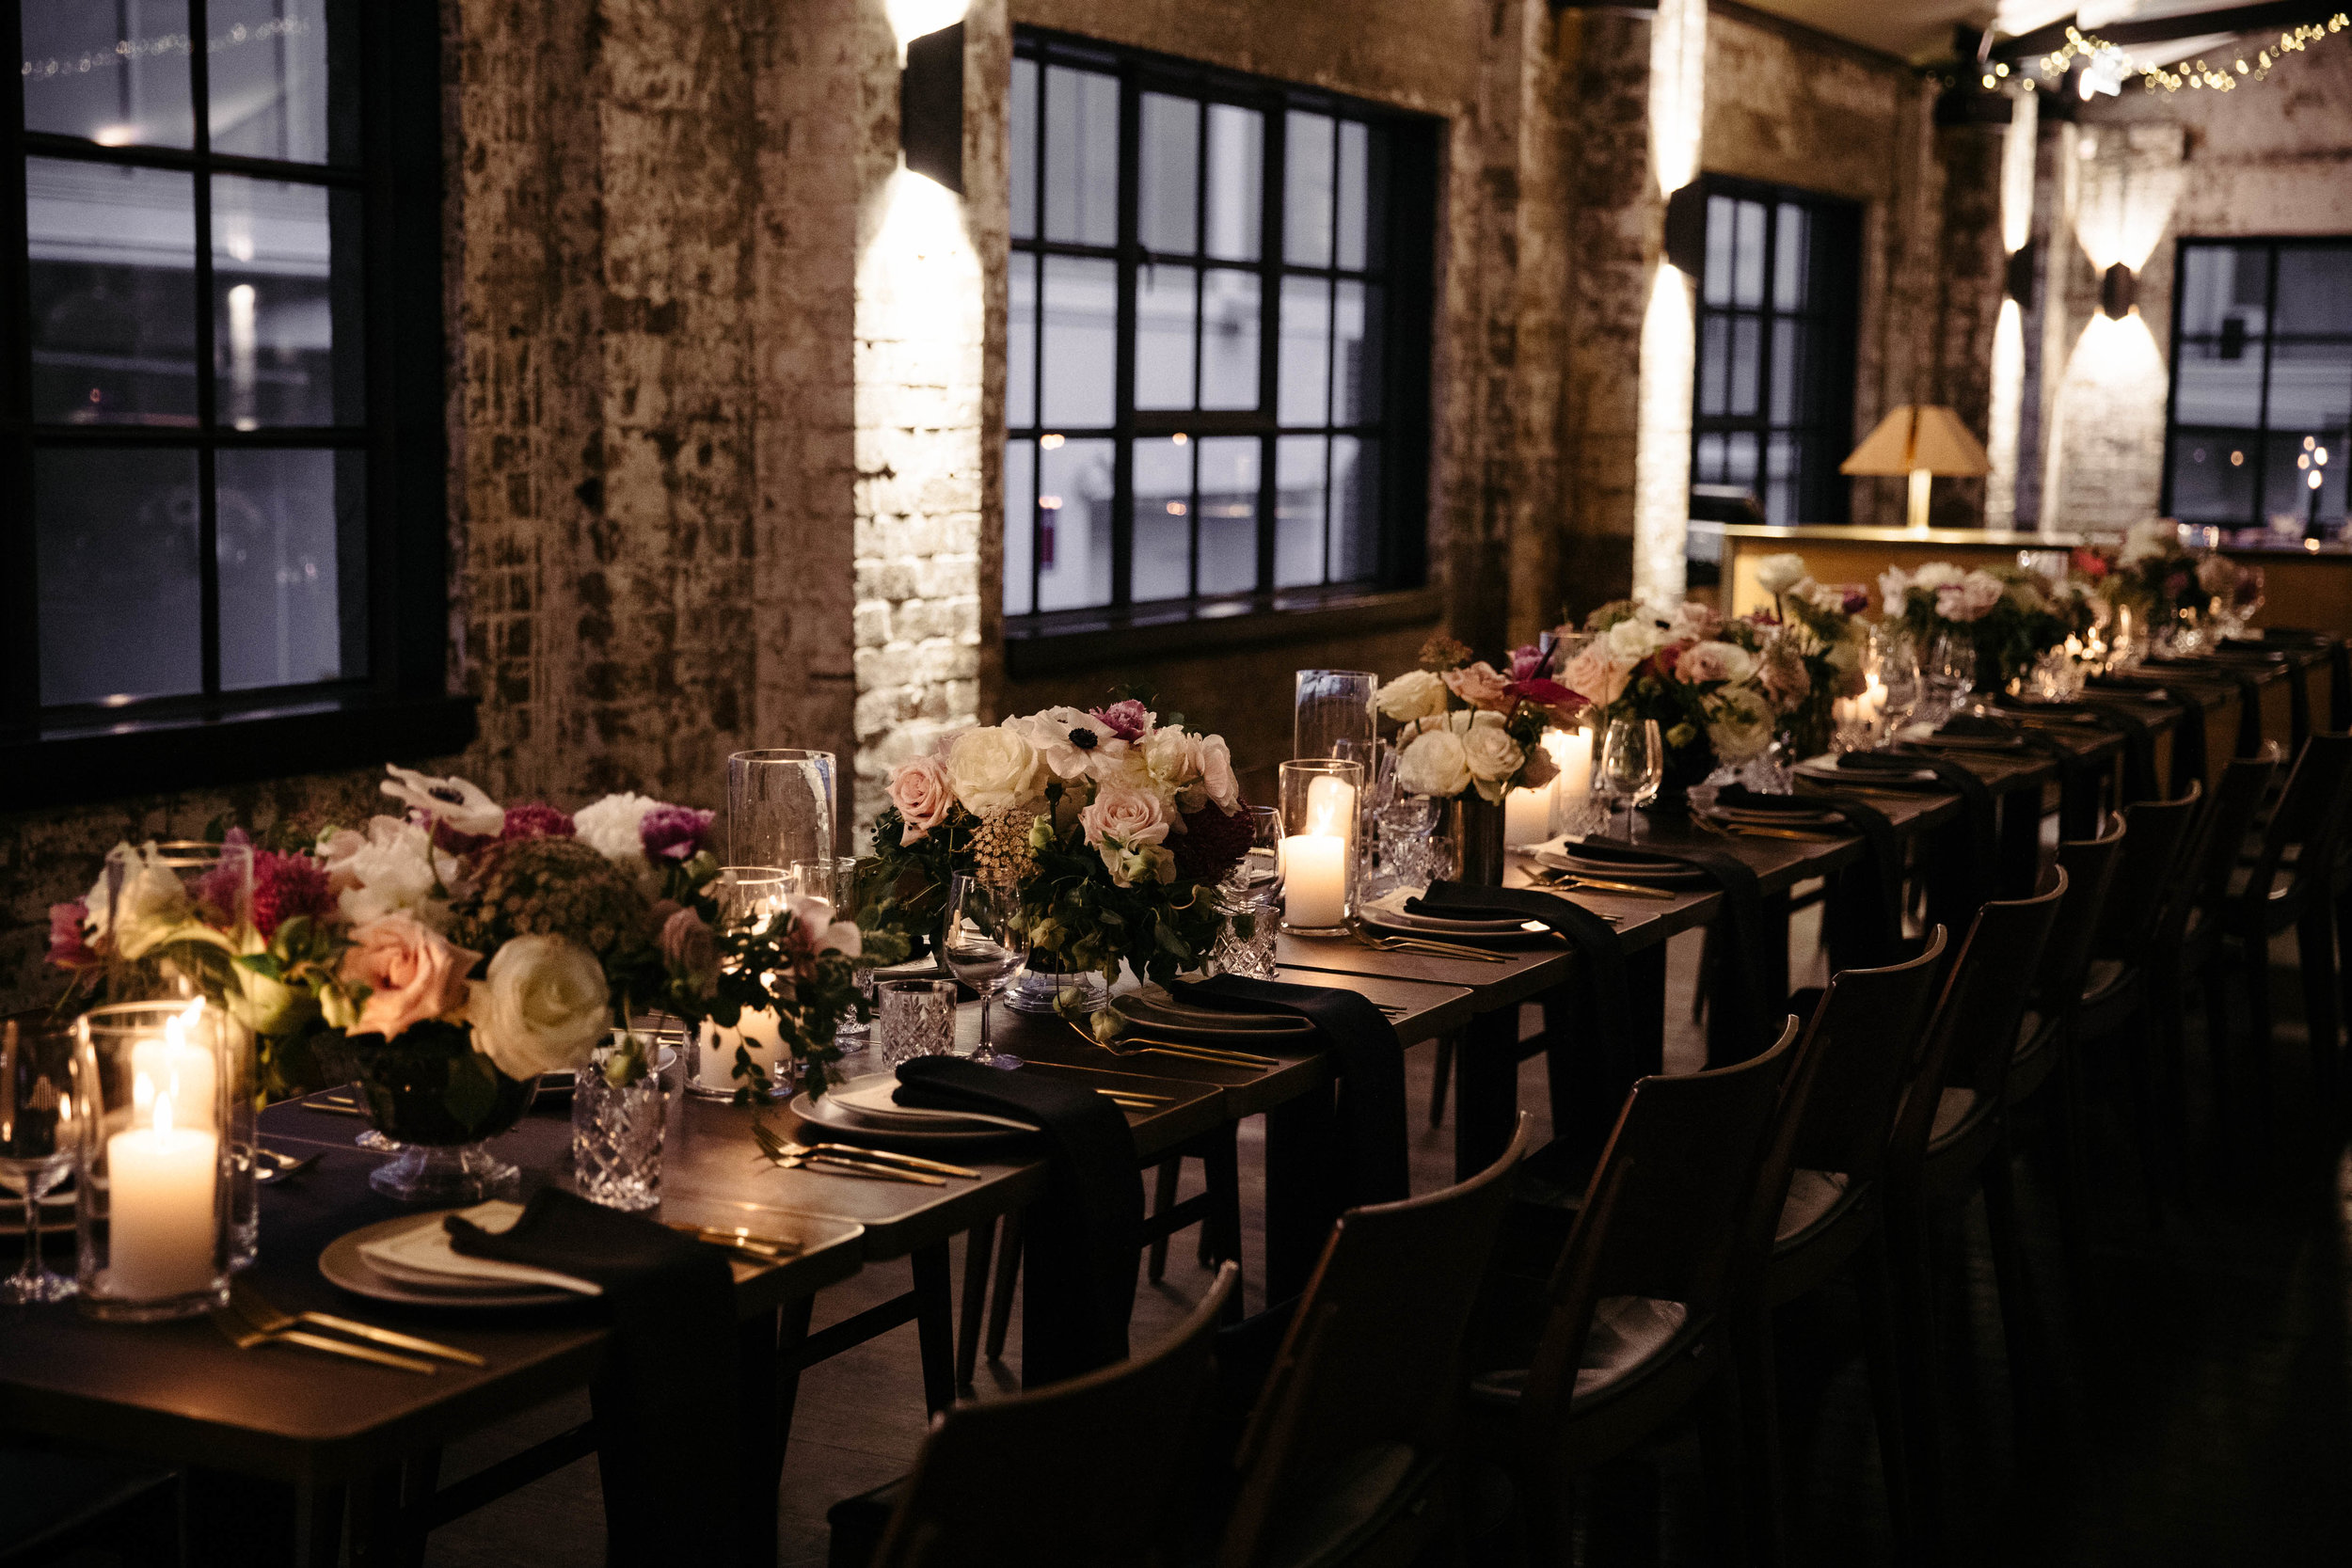 The Curated Life - Wedding Table Setting Riley Street Garage 6.jpg